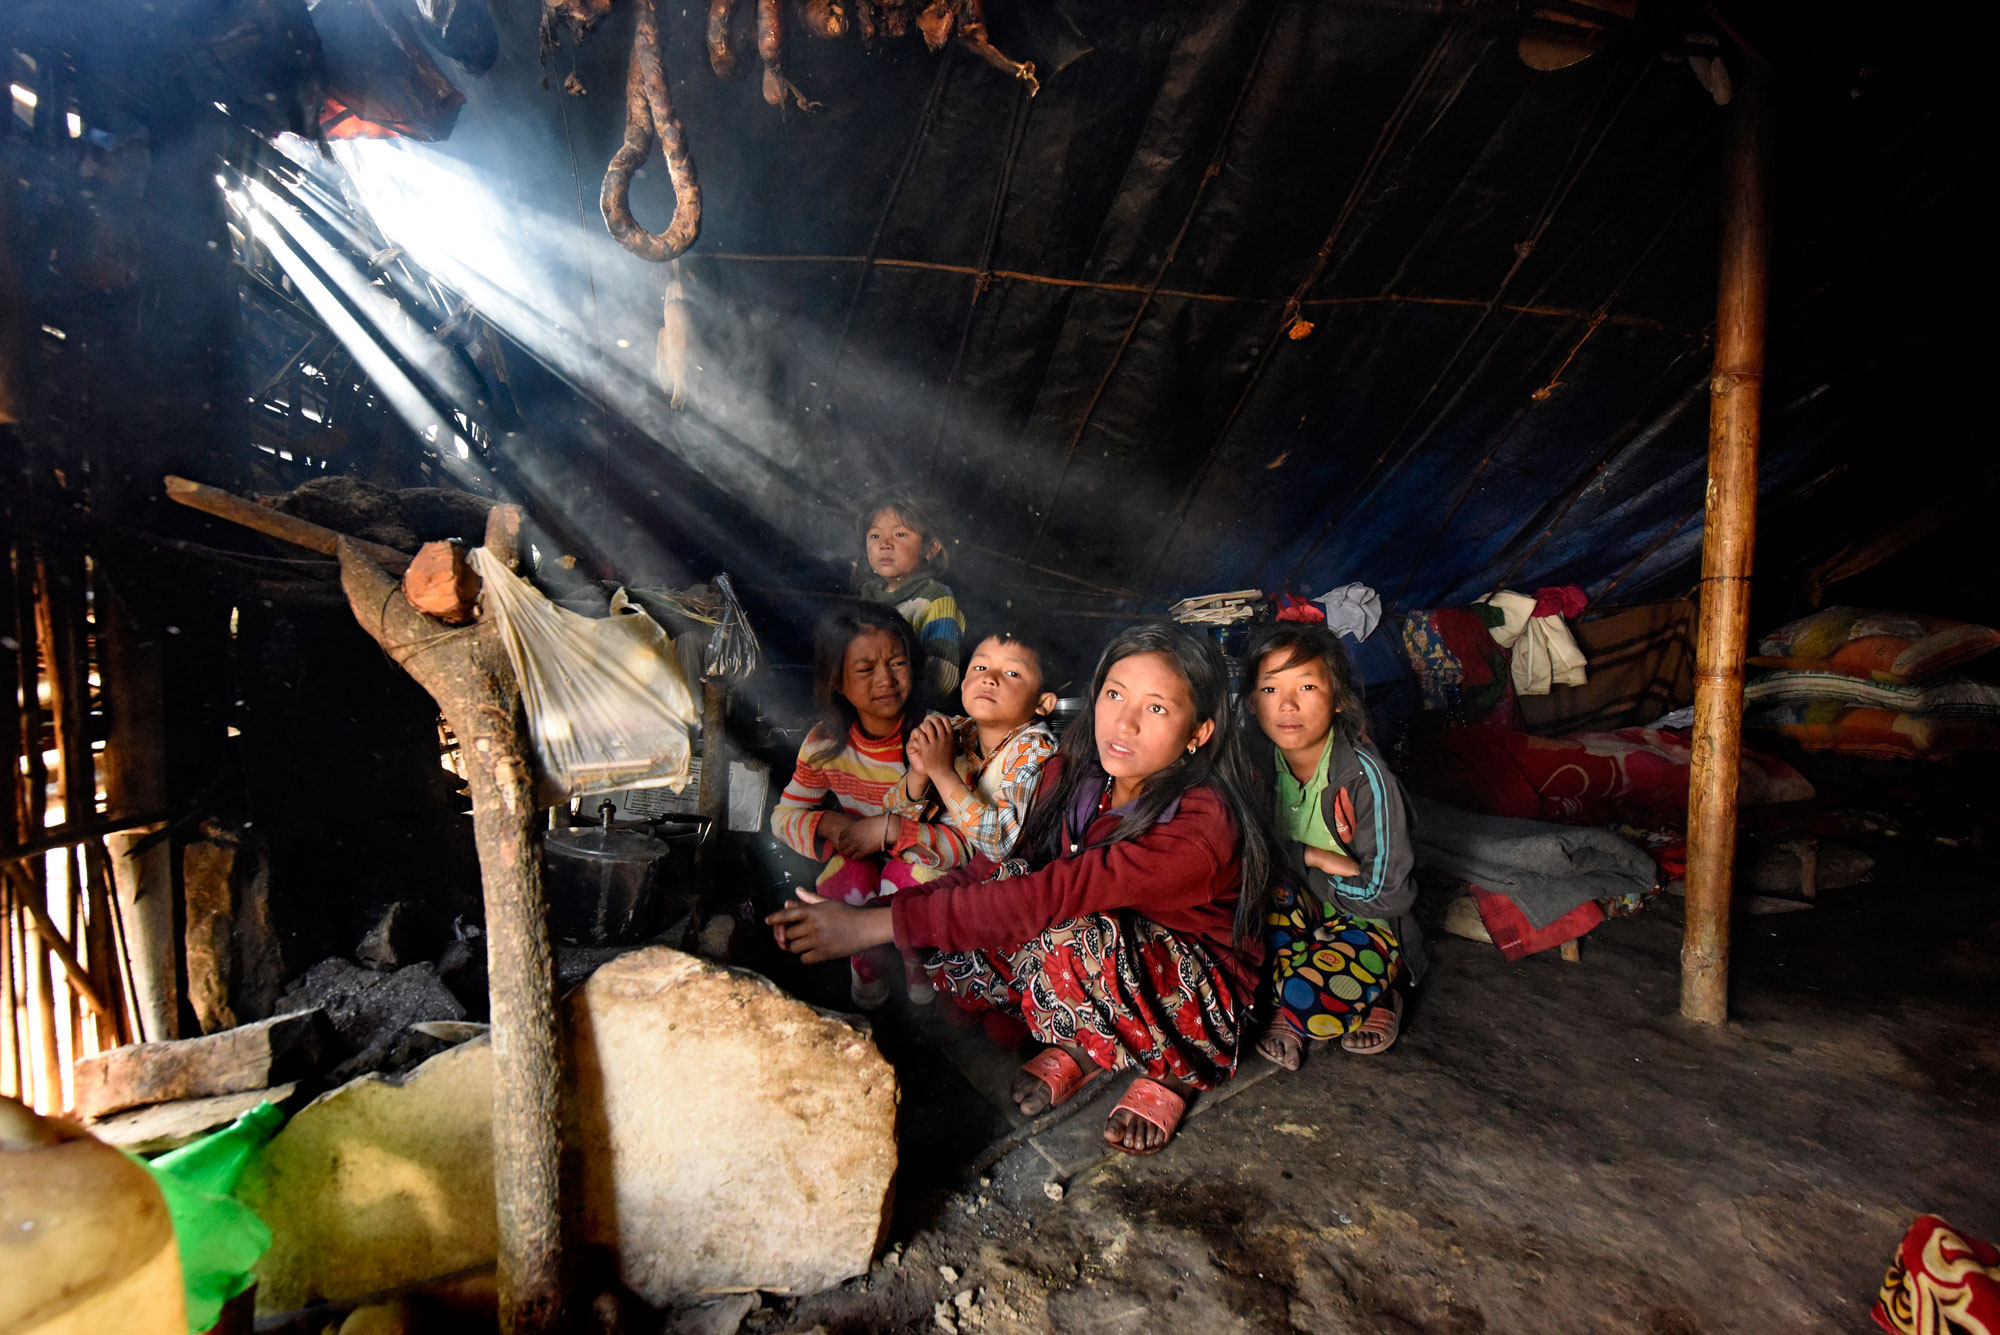 Children warm themselves by a fire inside their temporary shelter in Rasuwa, one of the areas worst affected by the earthquakes that struck Nepal earlier in the year. Their tent is not winter-resistant and often gets cold even in the pre-winter season, and the family does not have warm clothing. UNICEF/UN04381/Karki